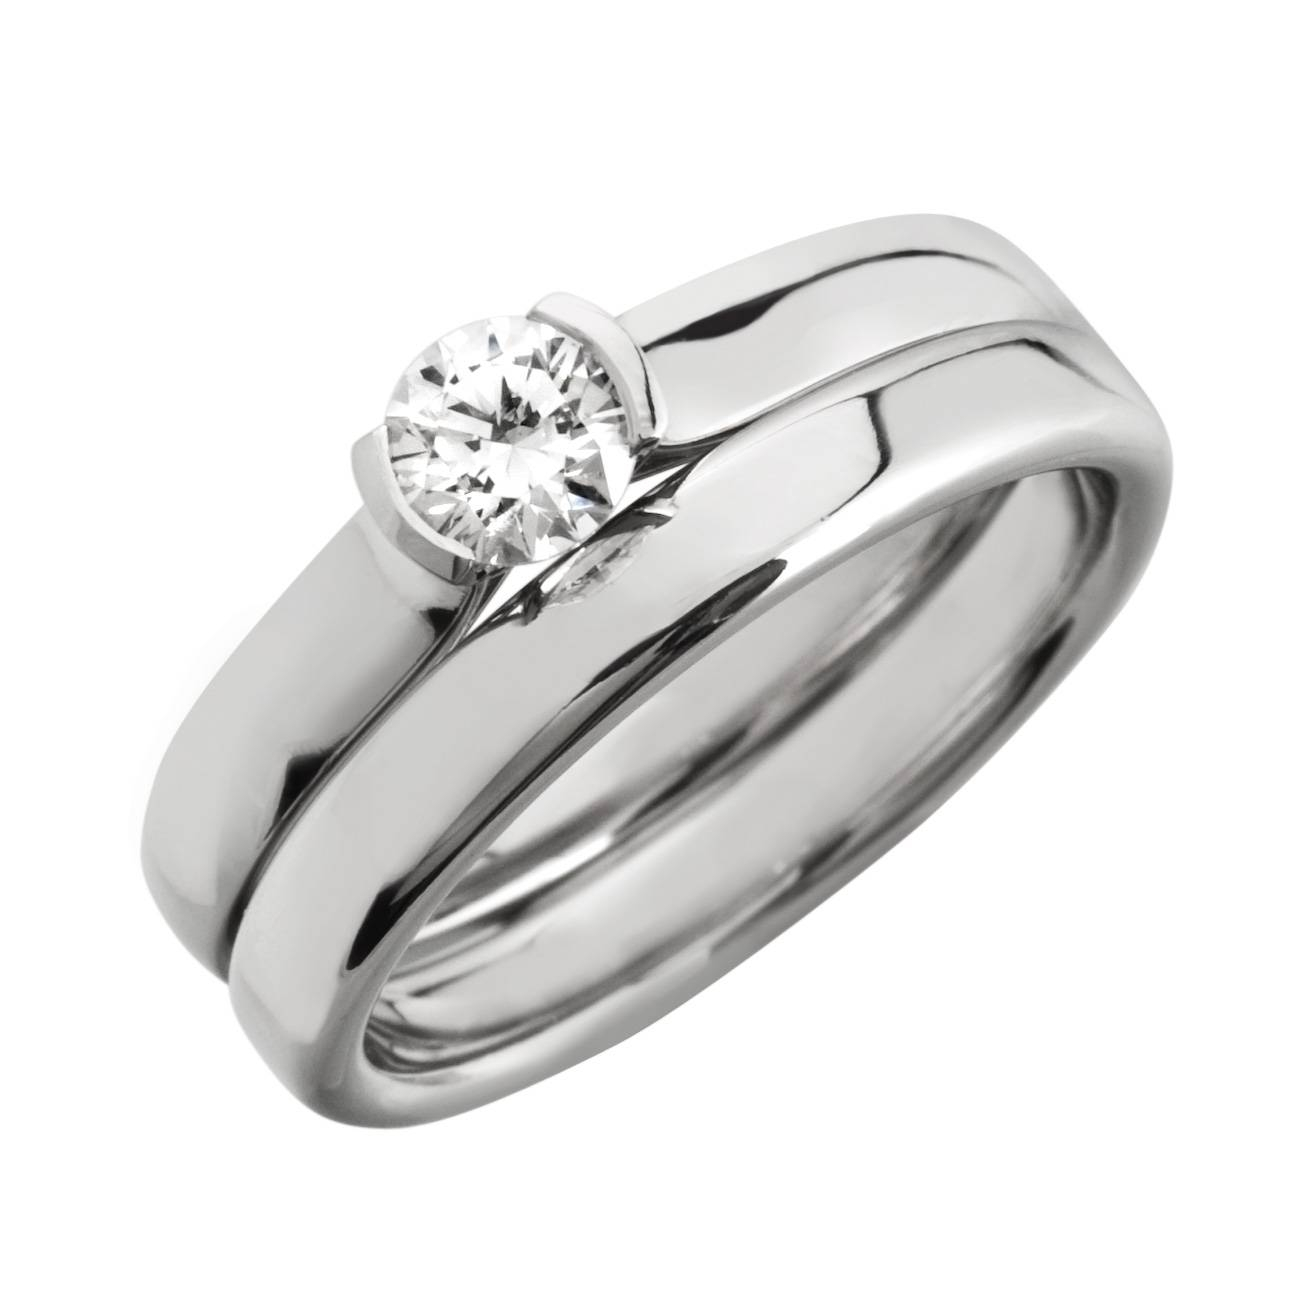 Wedding Rings : Wedding Ring Bridal Set Wedding Bands Online With Wedding Rings Bridal Sets (View 15 of 15)